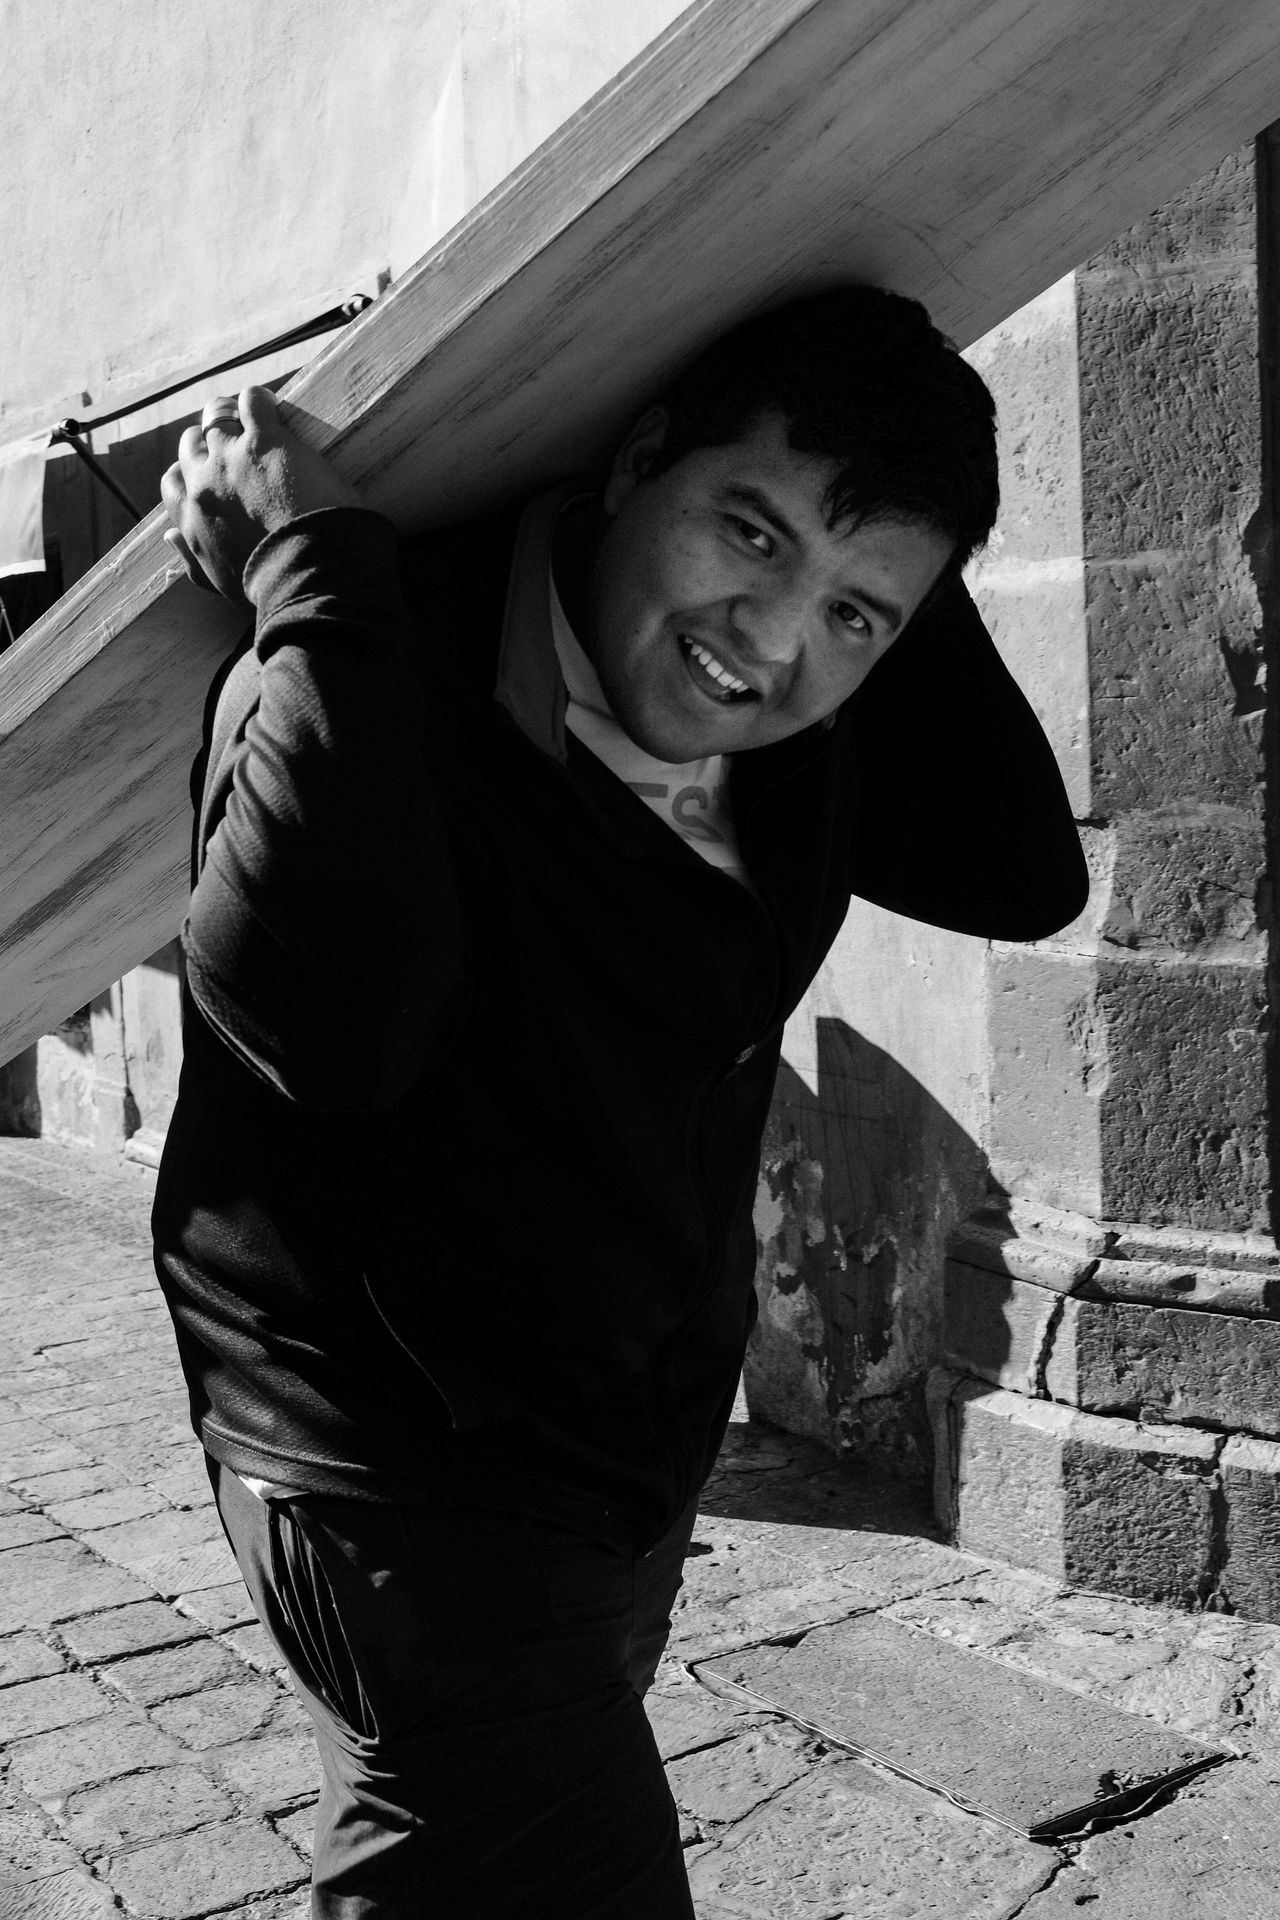 24 Hour Project Seoul Boy Carrying Casual Clothing Day Front View Leisure Activity Lifestyles Mexico Mexico City Outdoors Person Portrait Queretr Smiling Standing Toothy Smile